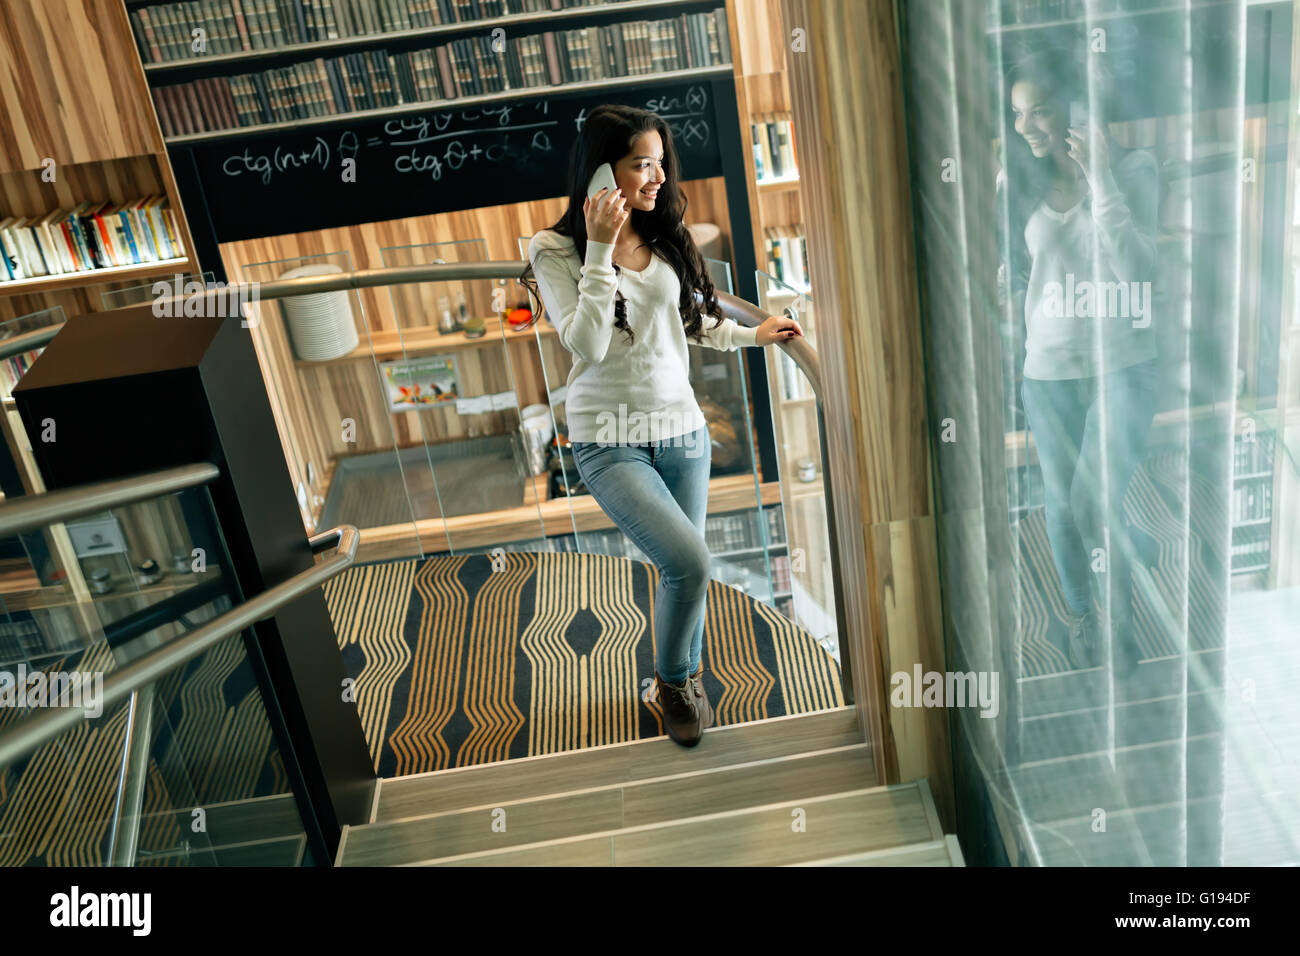 Businesswoman using phone indoors and smiling - Stock Image